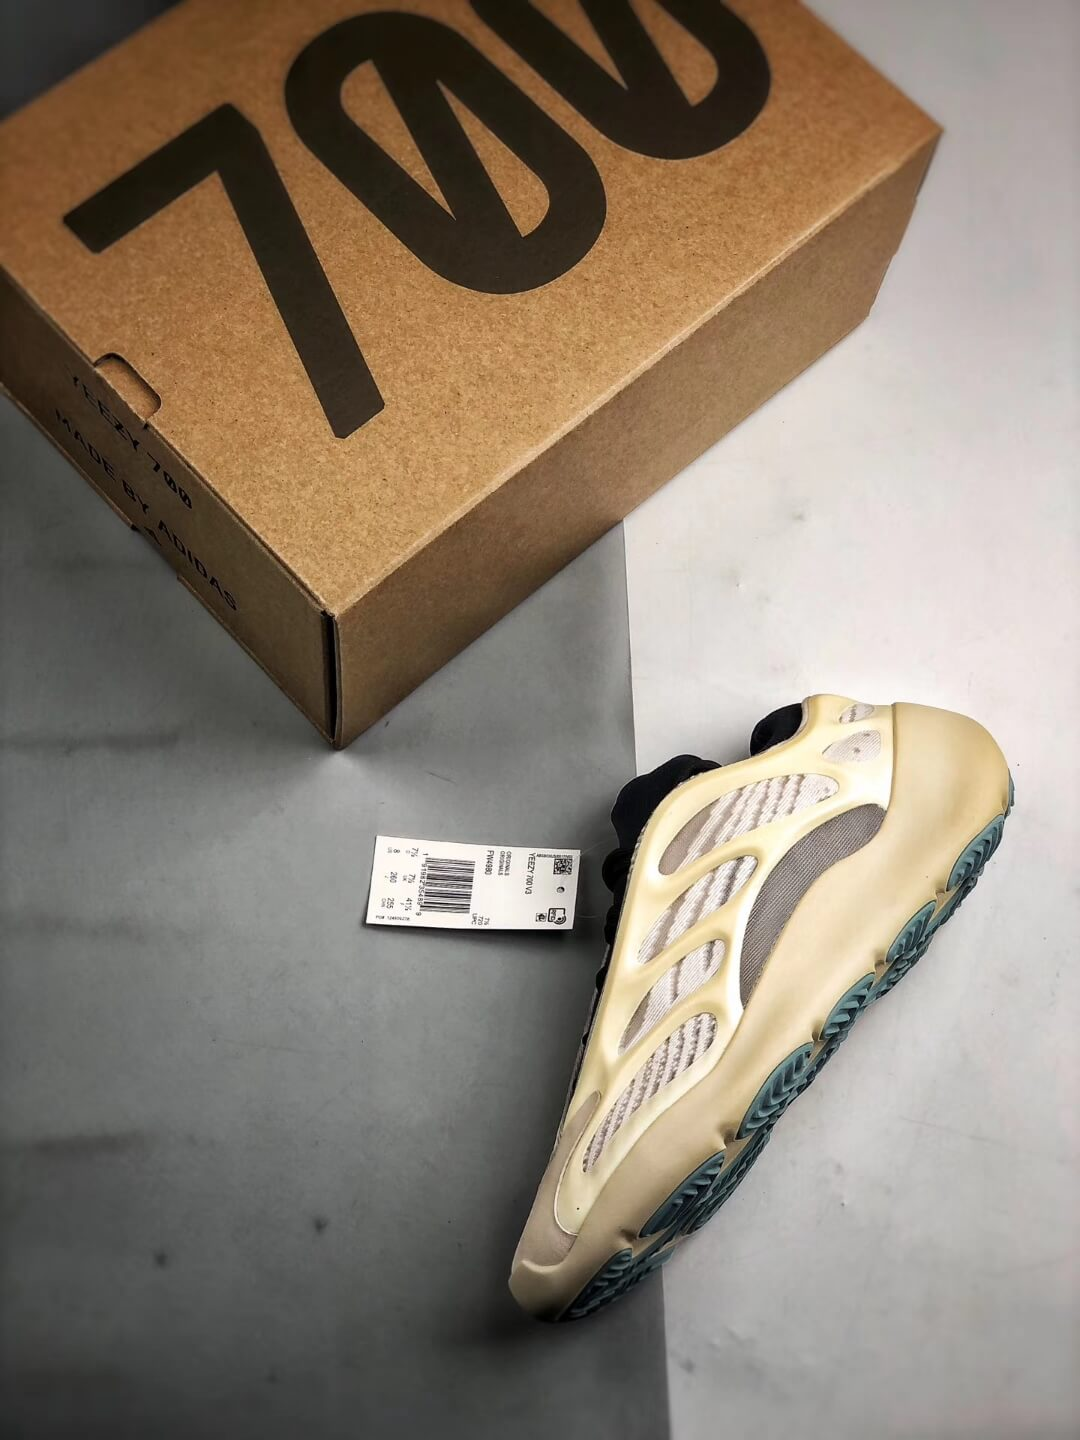 The Adidas Yeezy 700 V3 Azael Reflective Sneaker White Mesh Open Work Upper EVA Outer Sole Top RepSneakers 18